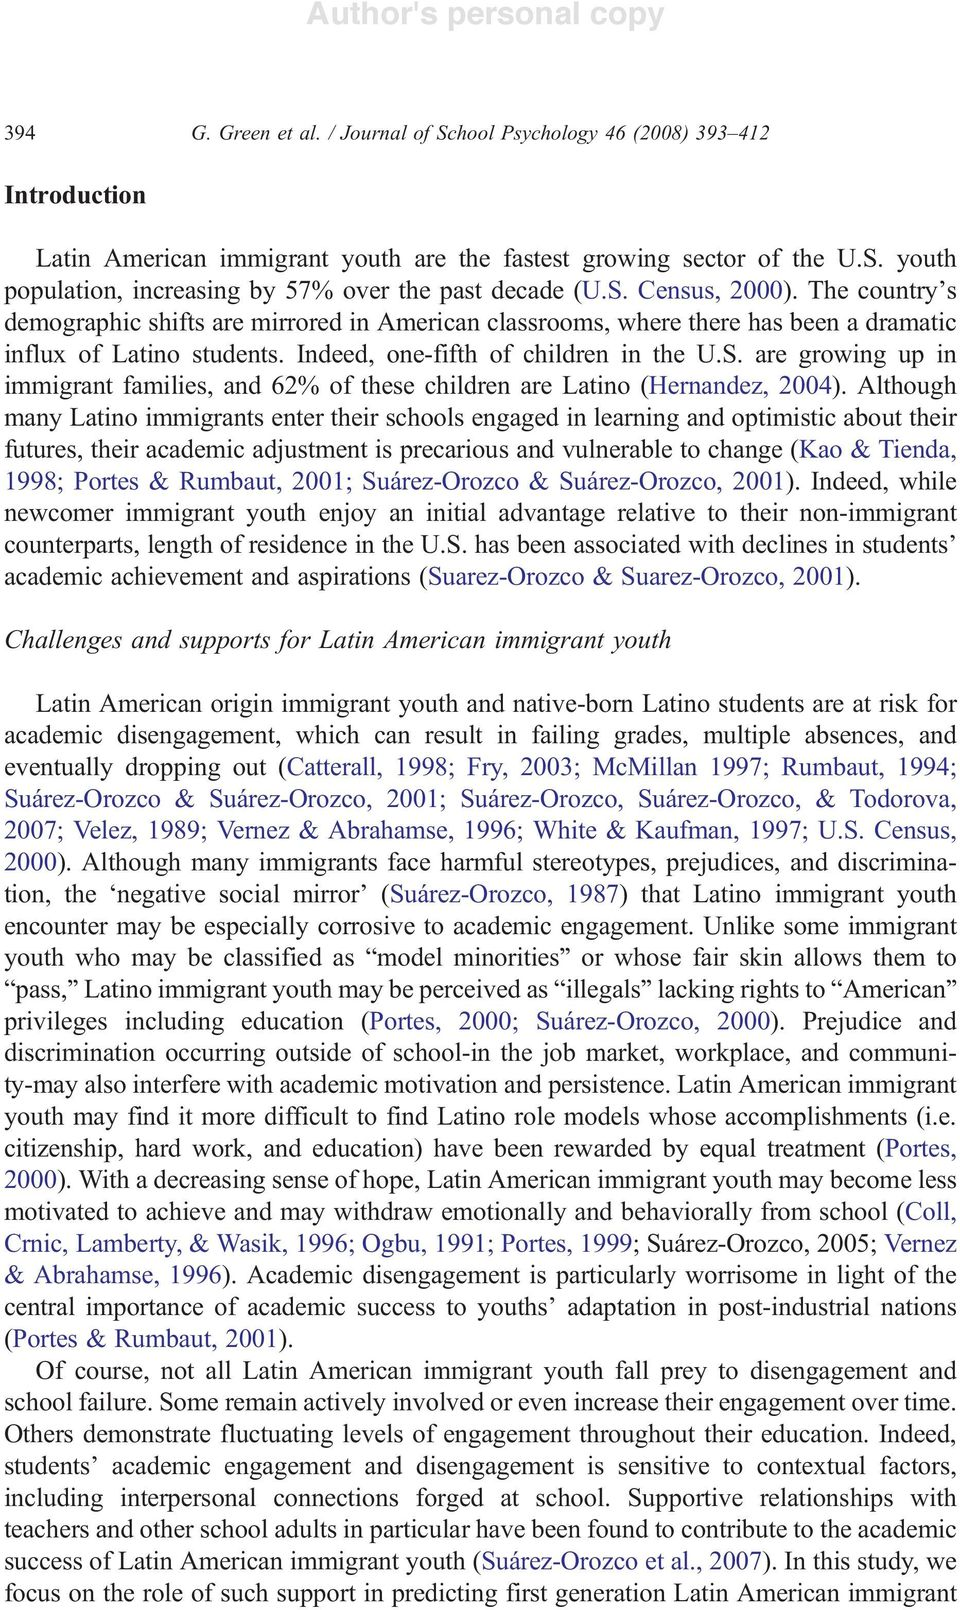 Although many Latino immigrants enter their schools engaged in learning and optimistic about their futures, their academic adjustment is precarious and vulnerable to change (Kao & Tienda, 1998;